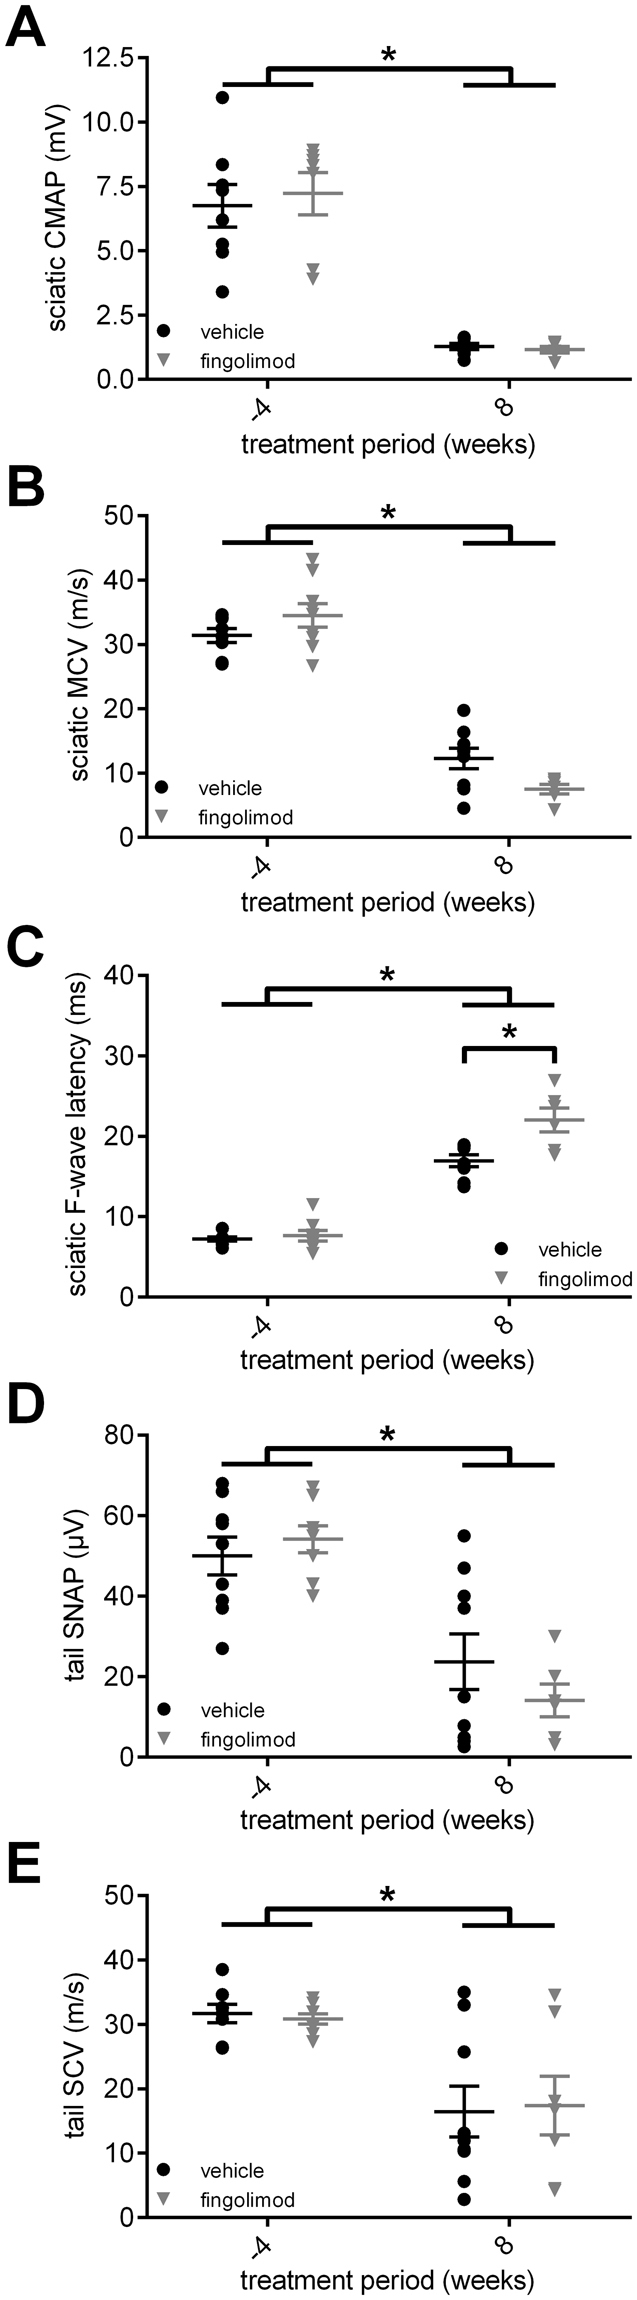 Electrophysiological characteristics of <t>fingolimod</t> treatment in CD86 −/− NOD mice. ( A ) The compound motor action potential amplitude (CMAP) of the sciatic nerve declined similarly in both fingolimod and vehicle treated CD86 −/− NOD mice. ( B ) Motor fibers showed electrophysiological signs of demyelination indicated by the decrease of motor nerve conduction velocity (MCV), which was more pronounced in the fingolimod treated mice compared to vehicle treatment. ( C ) F-wave latency increased in both groups with disease progression. Again, fingolimod treated mice were more affected than mice in the vehicle group. Similar to motor fibers, the ( D ) sensory nerve action potential amplitude (SNAP) and ( E ) sensory nerve conduction velocity (SCV) declined in both treatment groups. Statistical analysis: ( A ) Kruskall-Wallis test with Dunn's method, ( B – E ) 2-way ANOVA with Sidak post hoc, group sizes: n = 10 (vehicle), n = 9–10 (fingolimod). *p ≤ 0.05, ns: not significant.